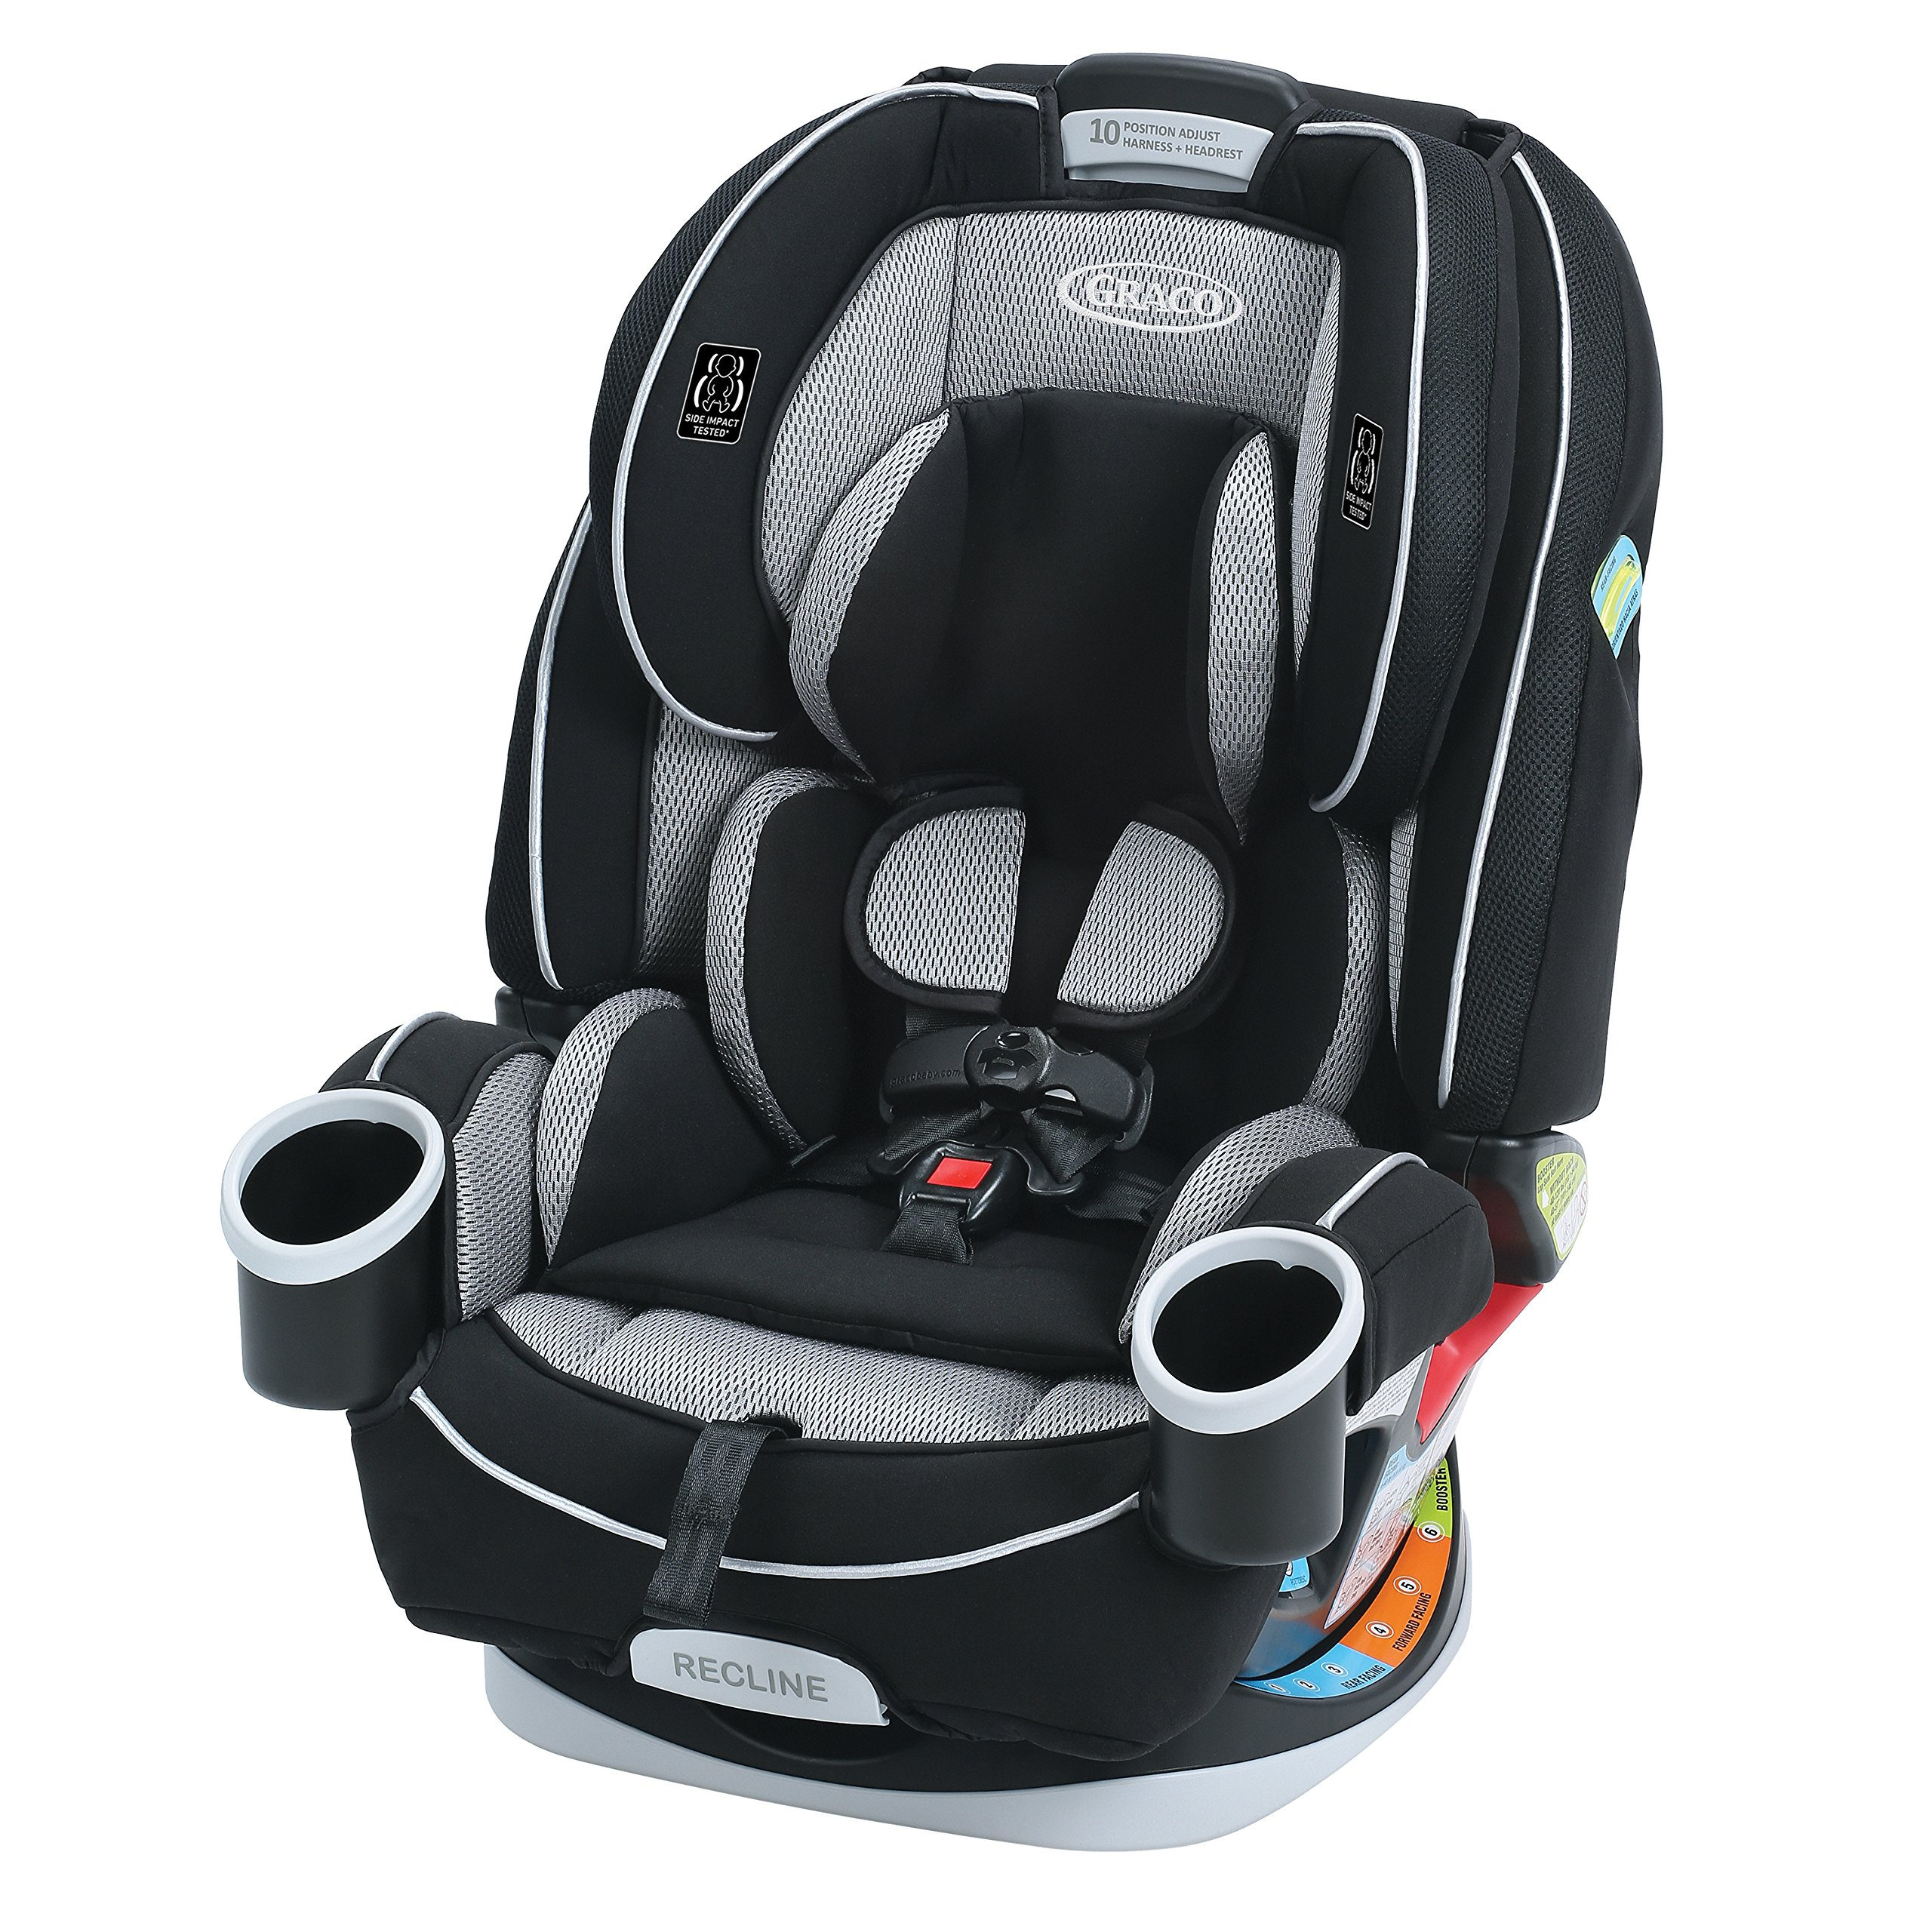 95393db61 Amazon.com  Graco 4Ever 4-in-1 Convertible Car Seat